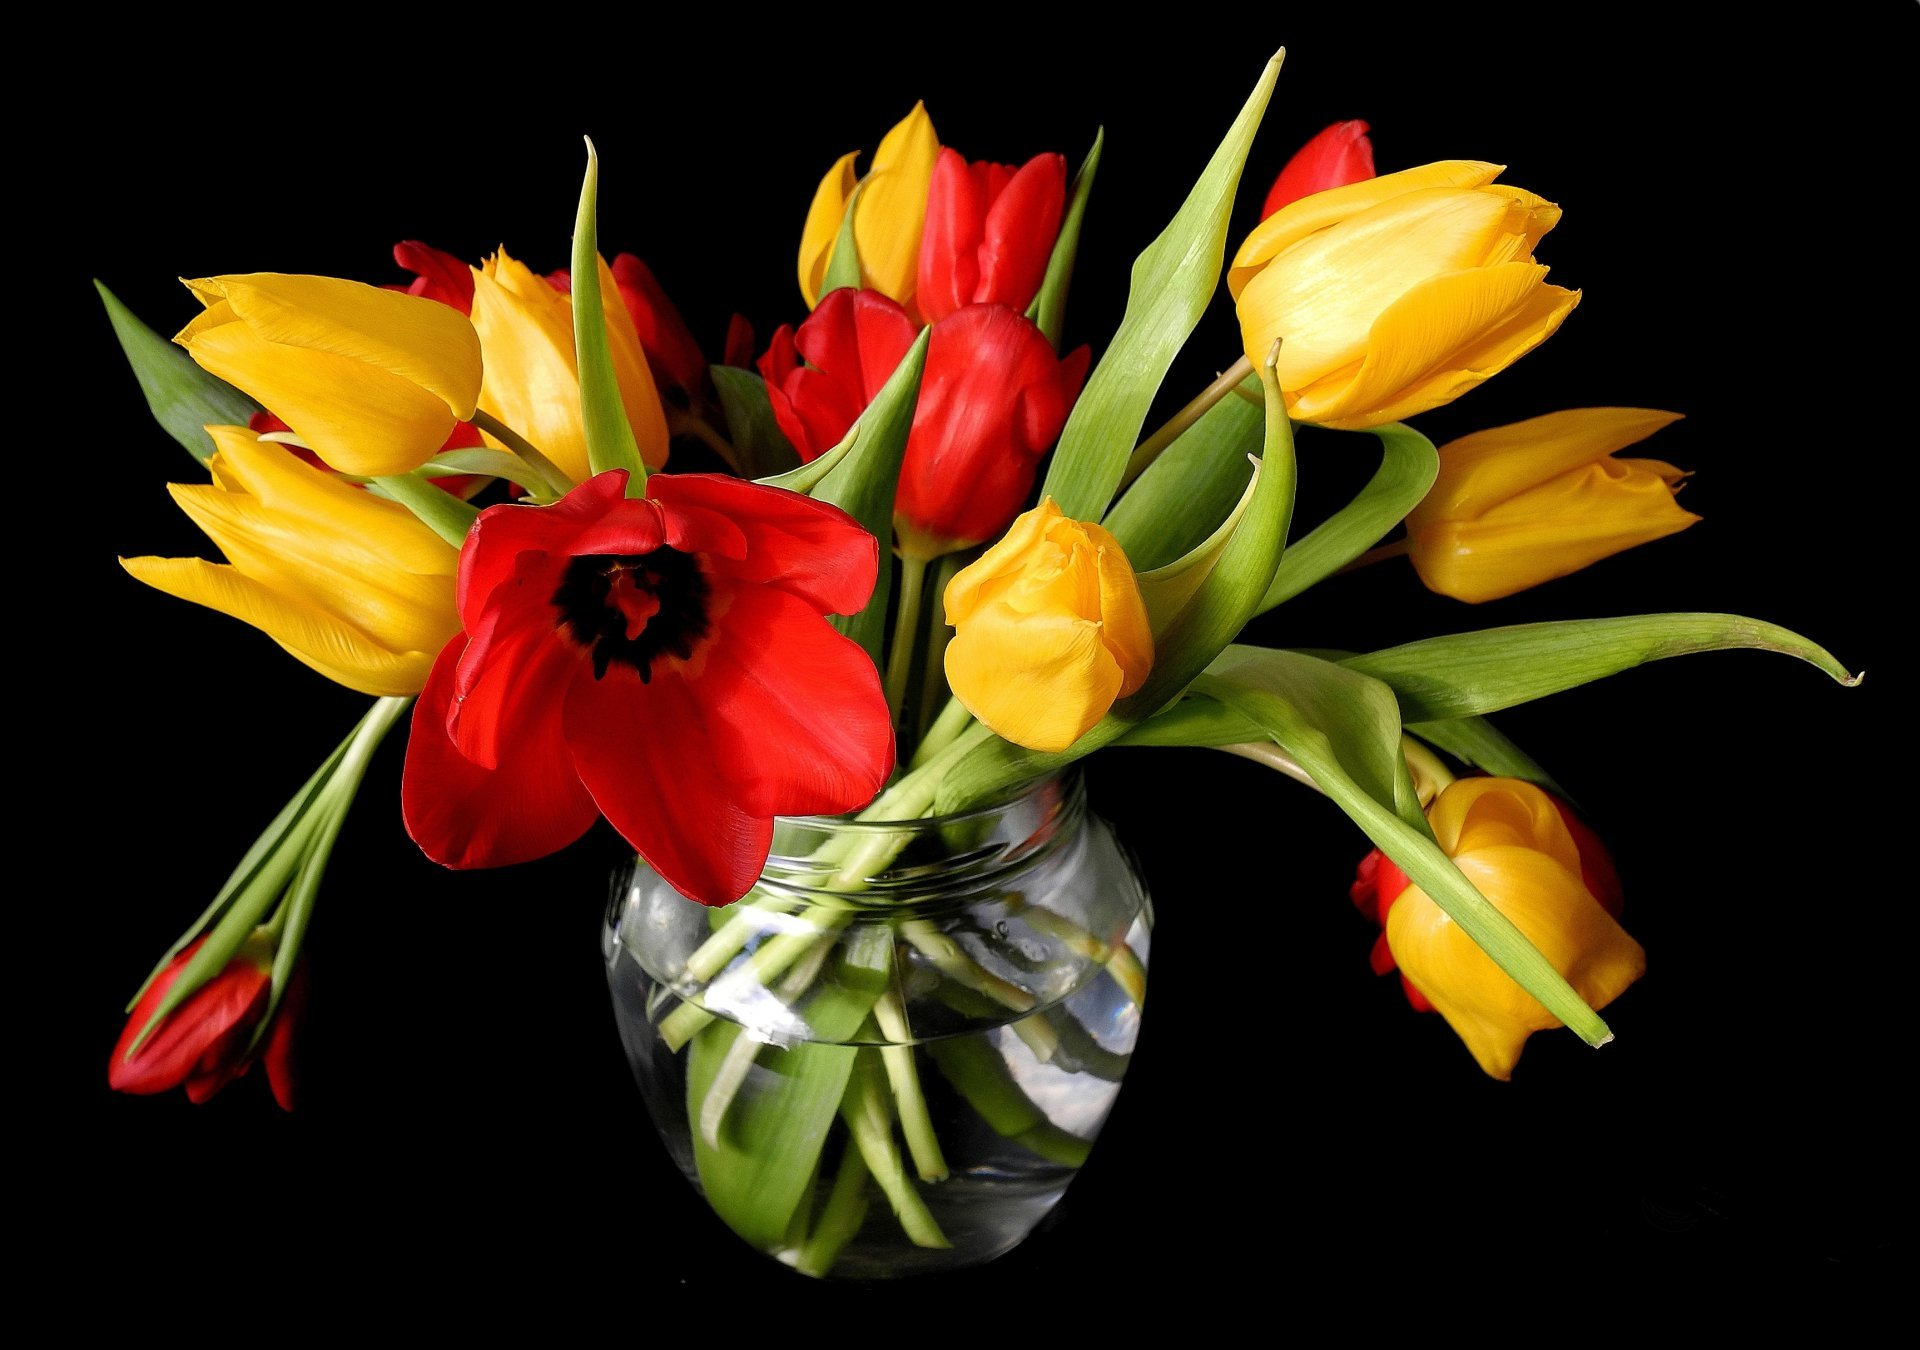 Spring Tulips Yellow Red Vase Flower Buds Black Background Spring Flowers Black Background 869375 Hd Wallpaper Backgrounds Download